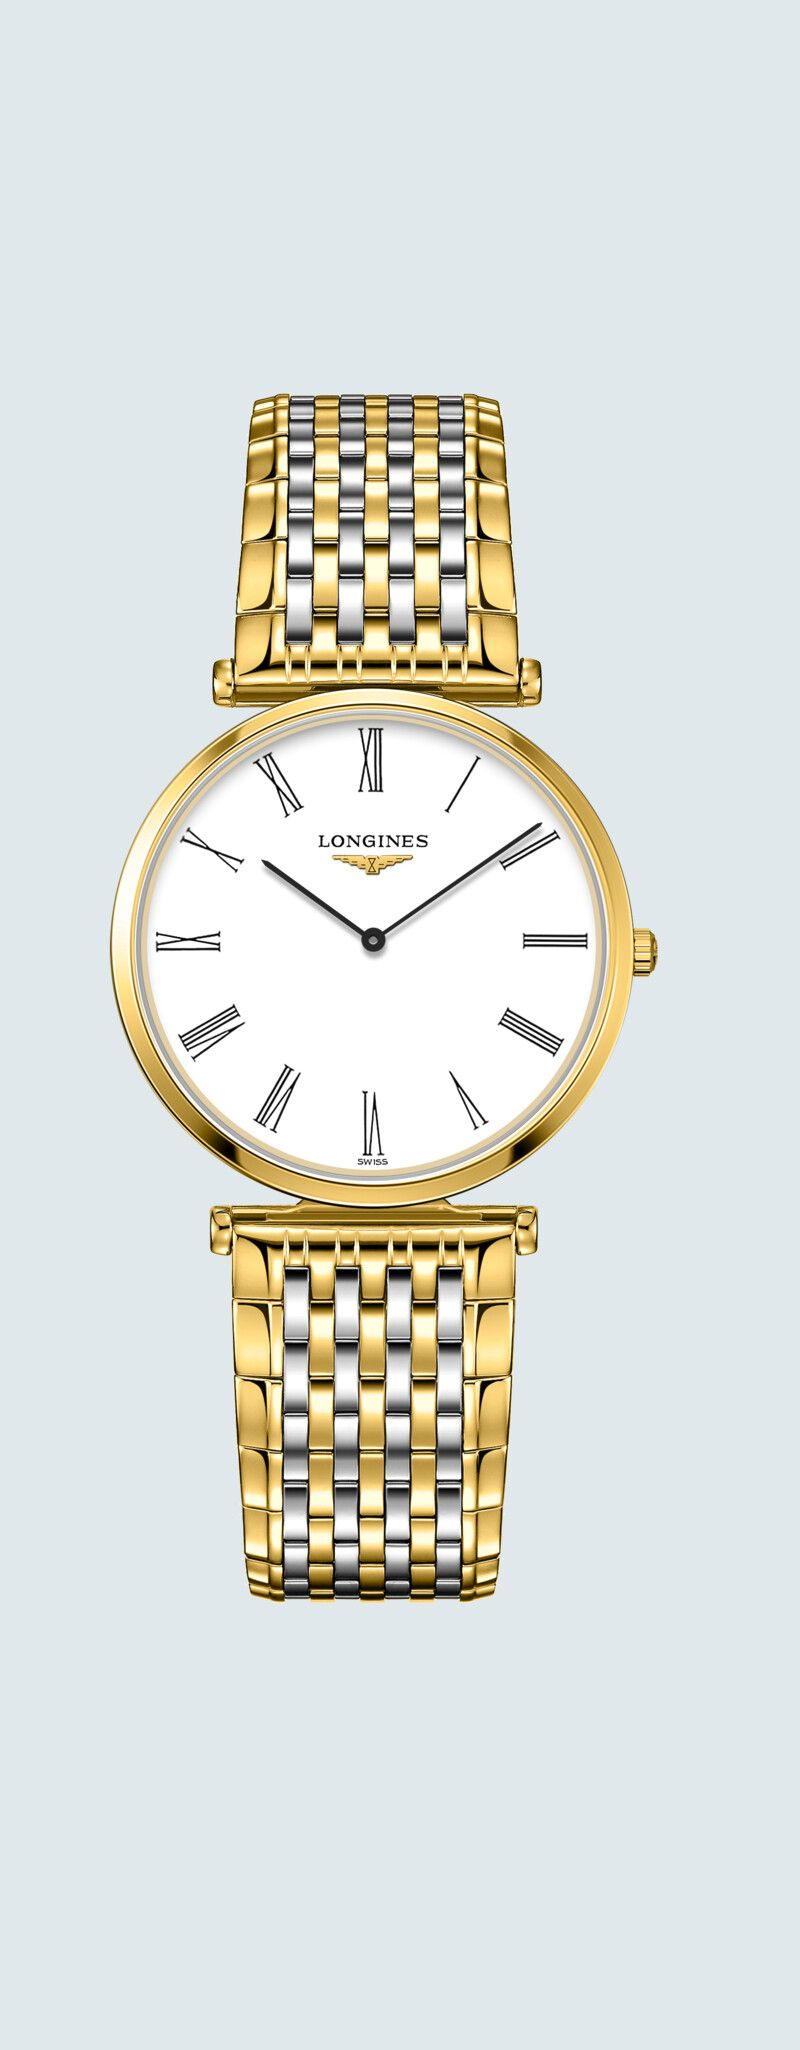 33.00 mm Yellow PVD coating case with White dial and Stainless steel and yellow PVD coating strap -